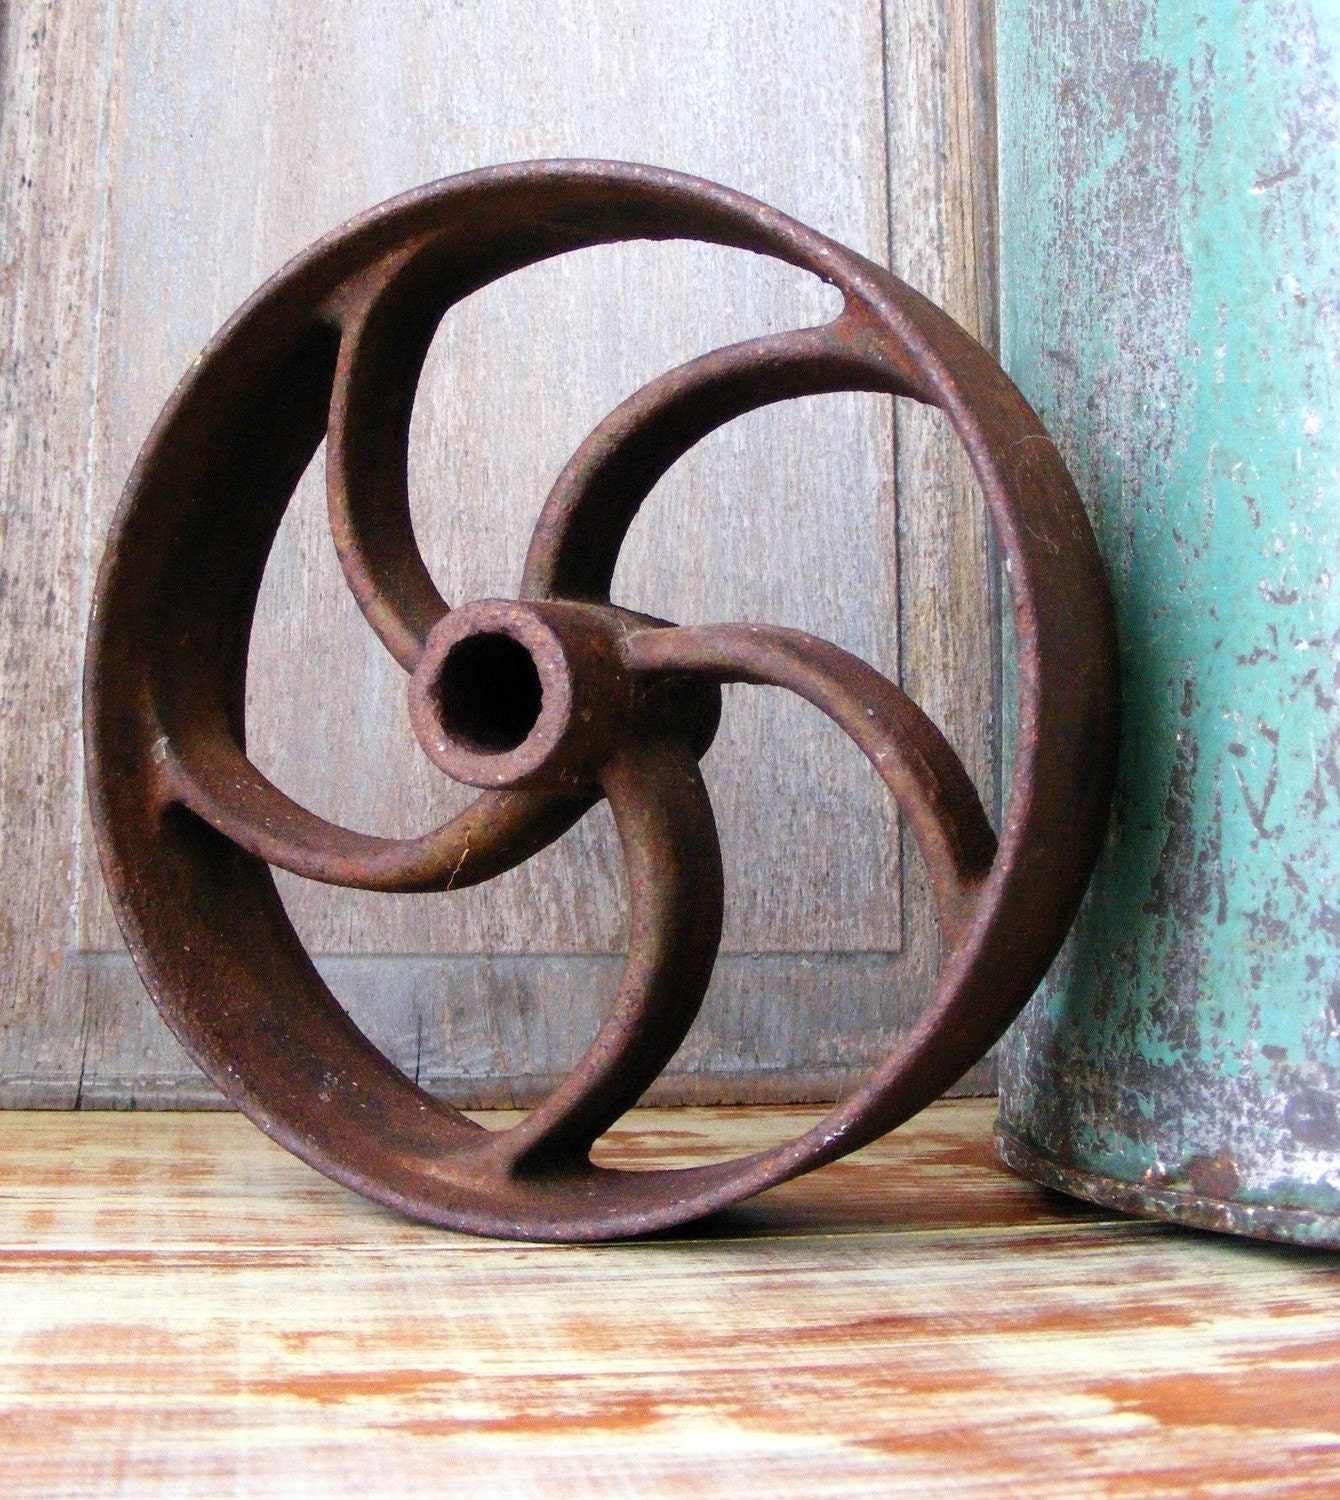 Pulley wheel industrial decor antique rustic farmhouse decor for Rustic industrial decor